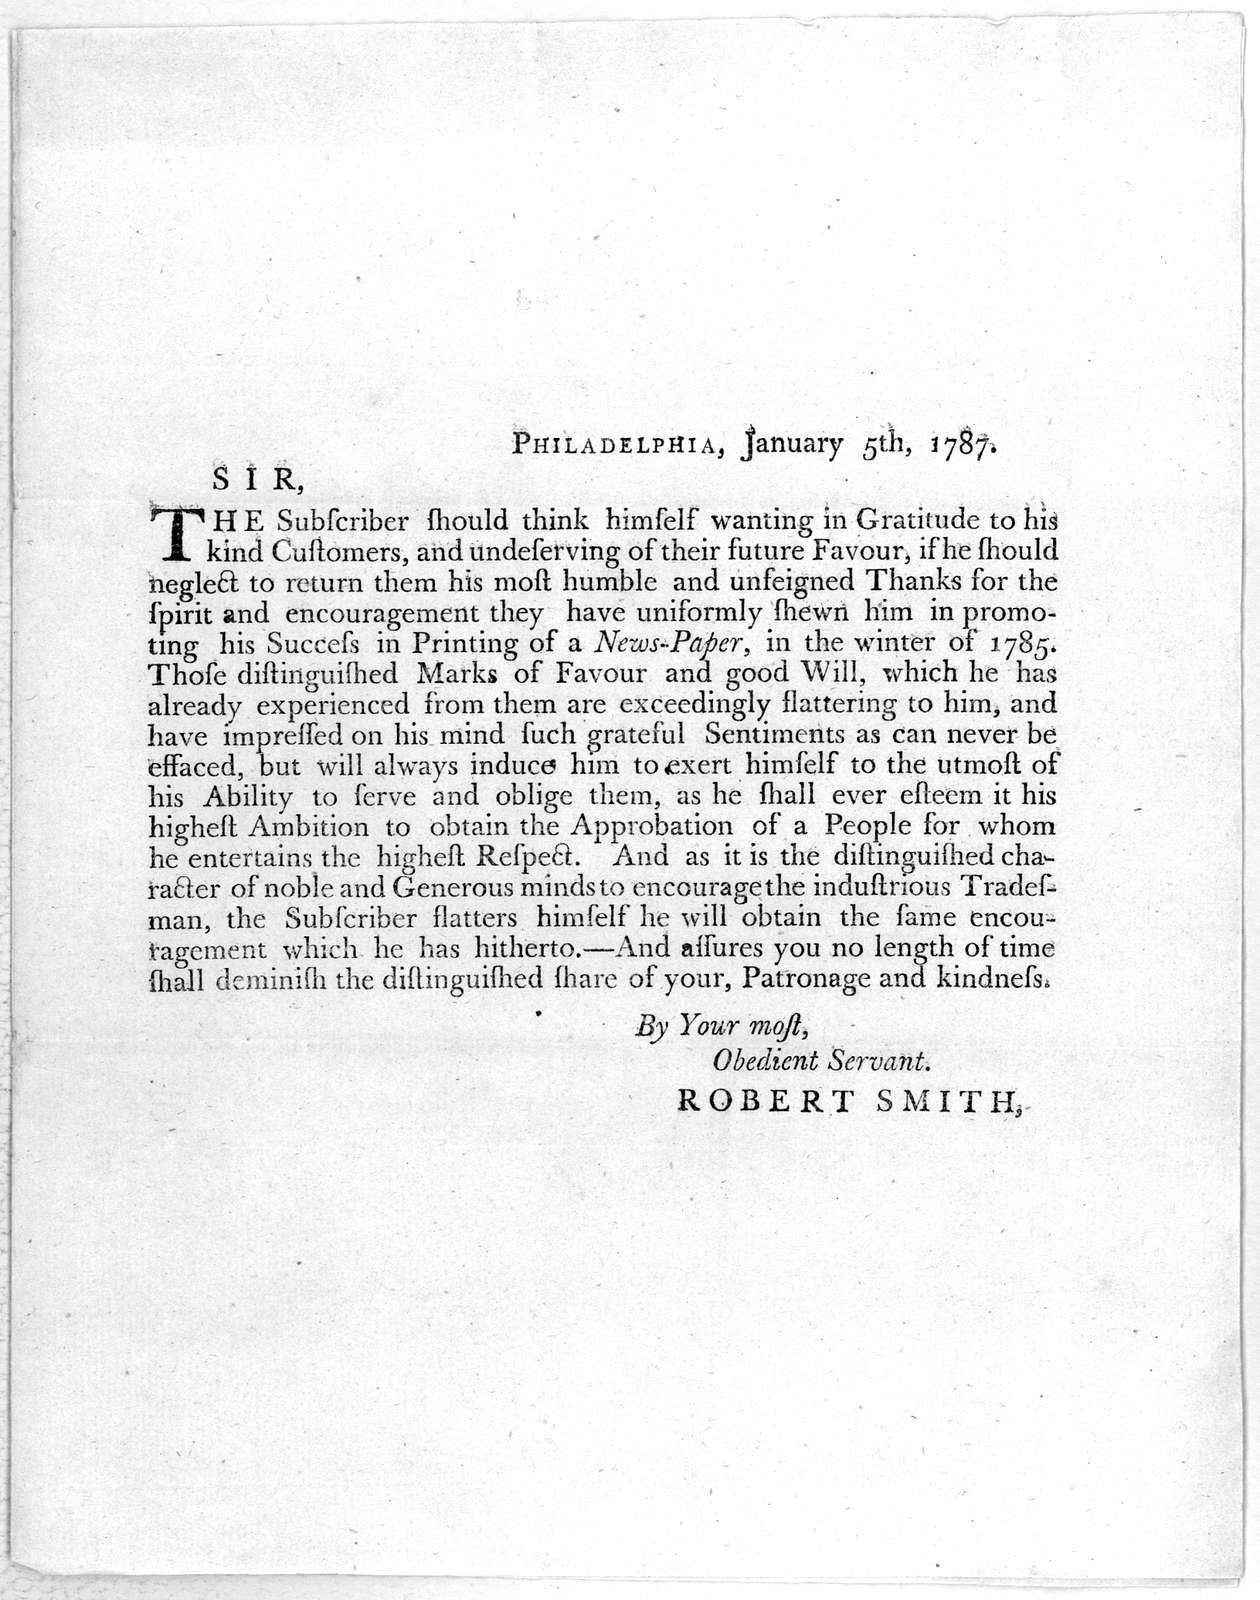 Philadelphia, January 5th, 1787. Sir. The subscriber should think himself wanting in gratitude to his kind customers, and undeserving of their future favour, if he should neglect to return them his most humble and unfeigned thanks for the spirit